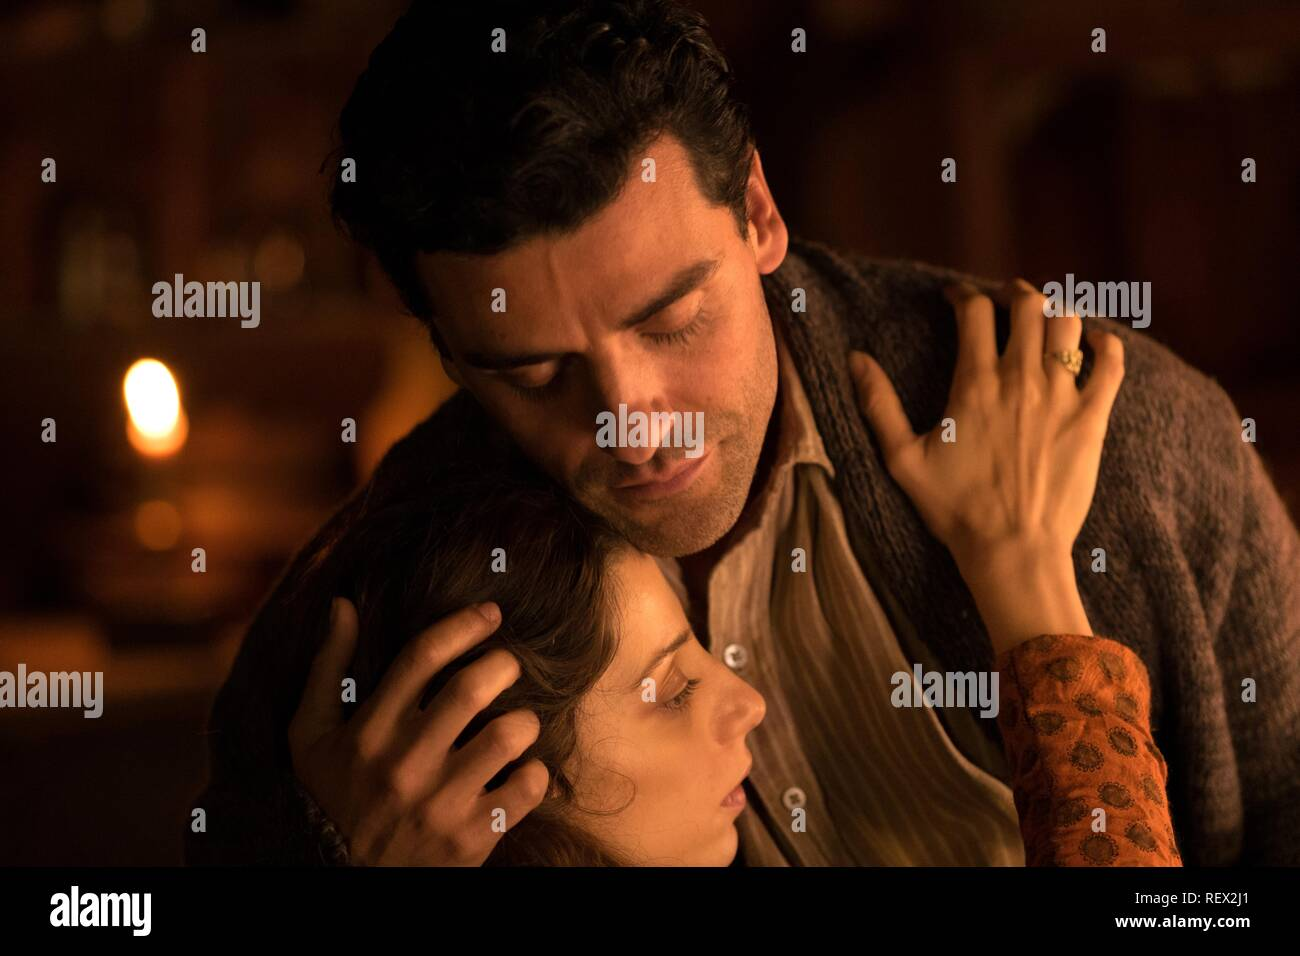 OSCAR ISAAC & ANGELA SARAFYAN THE PROMISE (2016) - Stock Image